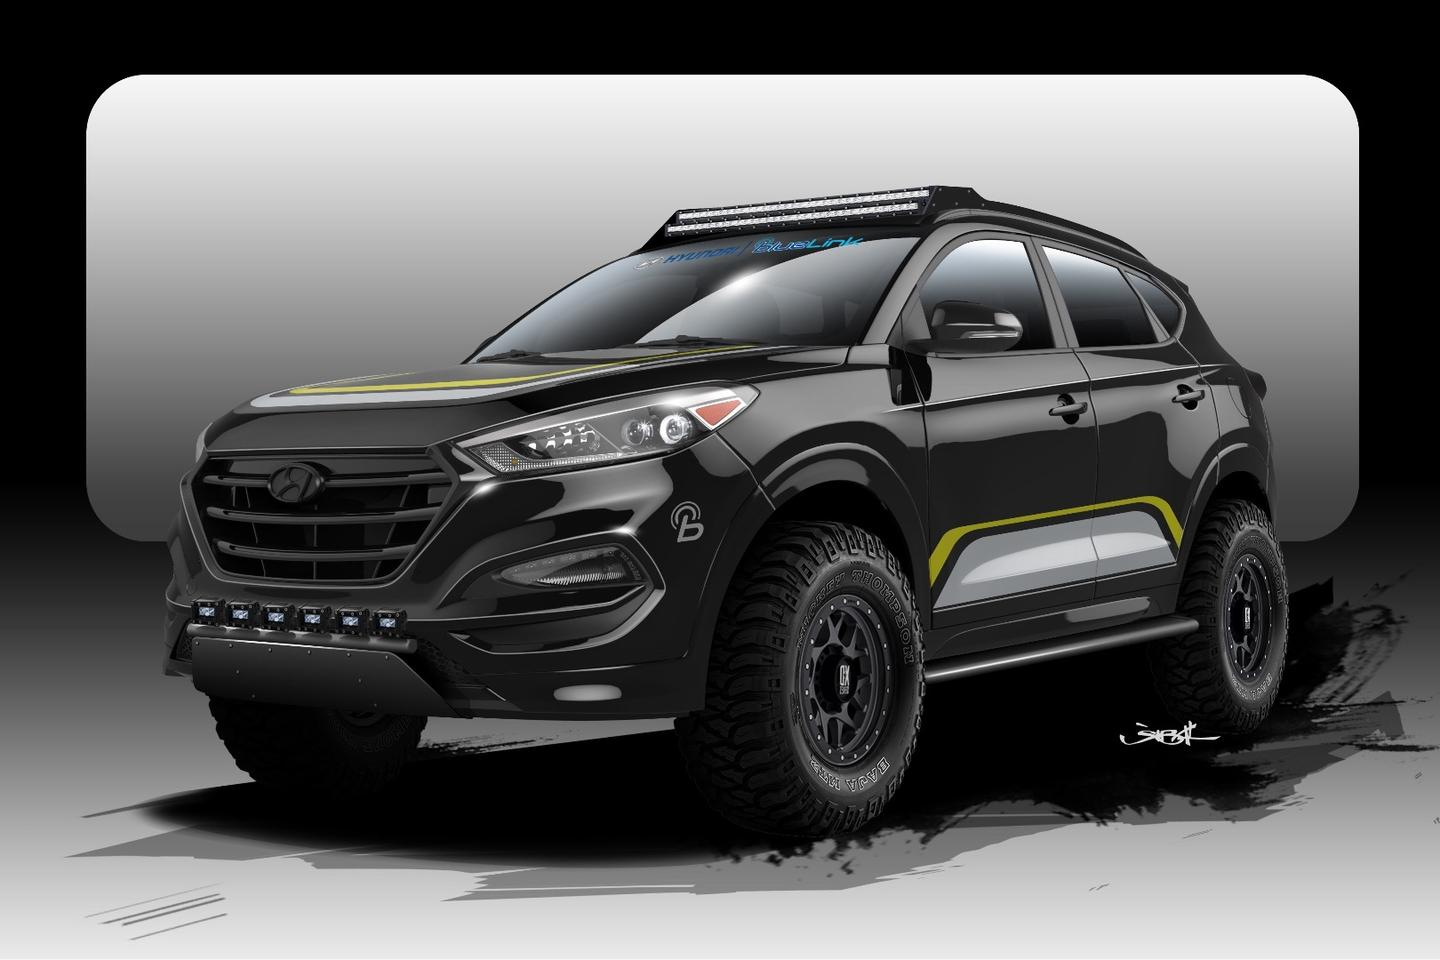 Hyundai and Rockstar Performance Garage will present a rugged, off-road-ready version of the Tucson crossover at SEMA